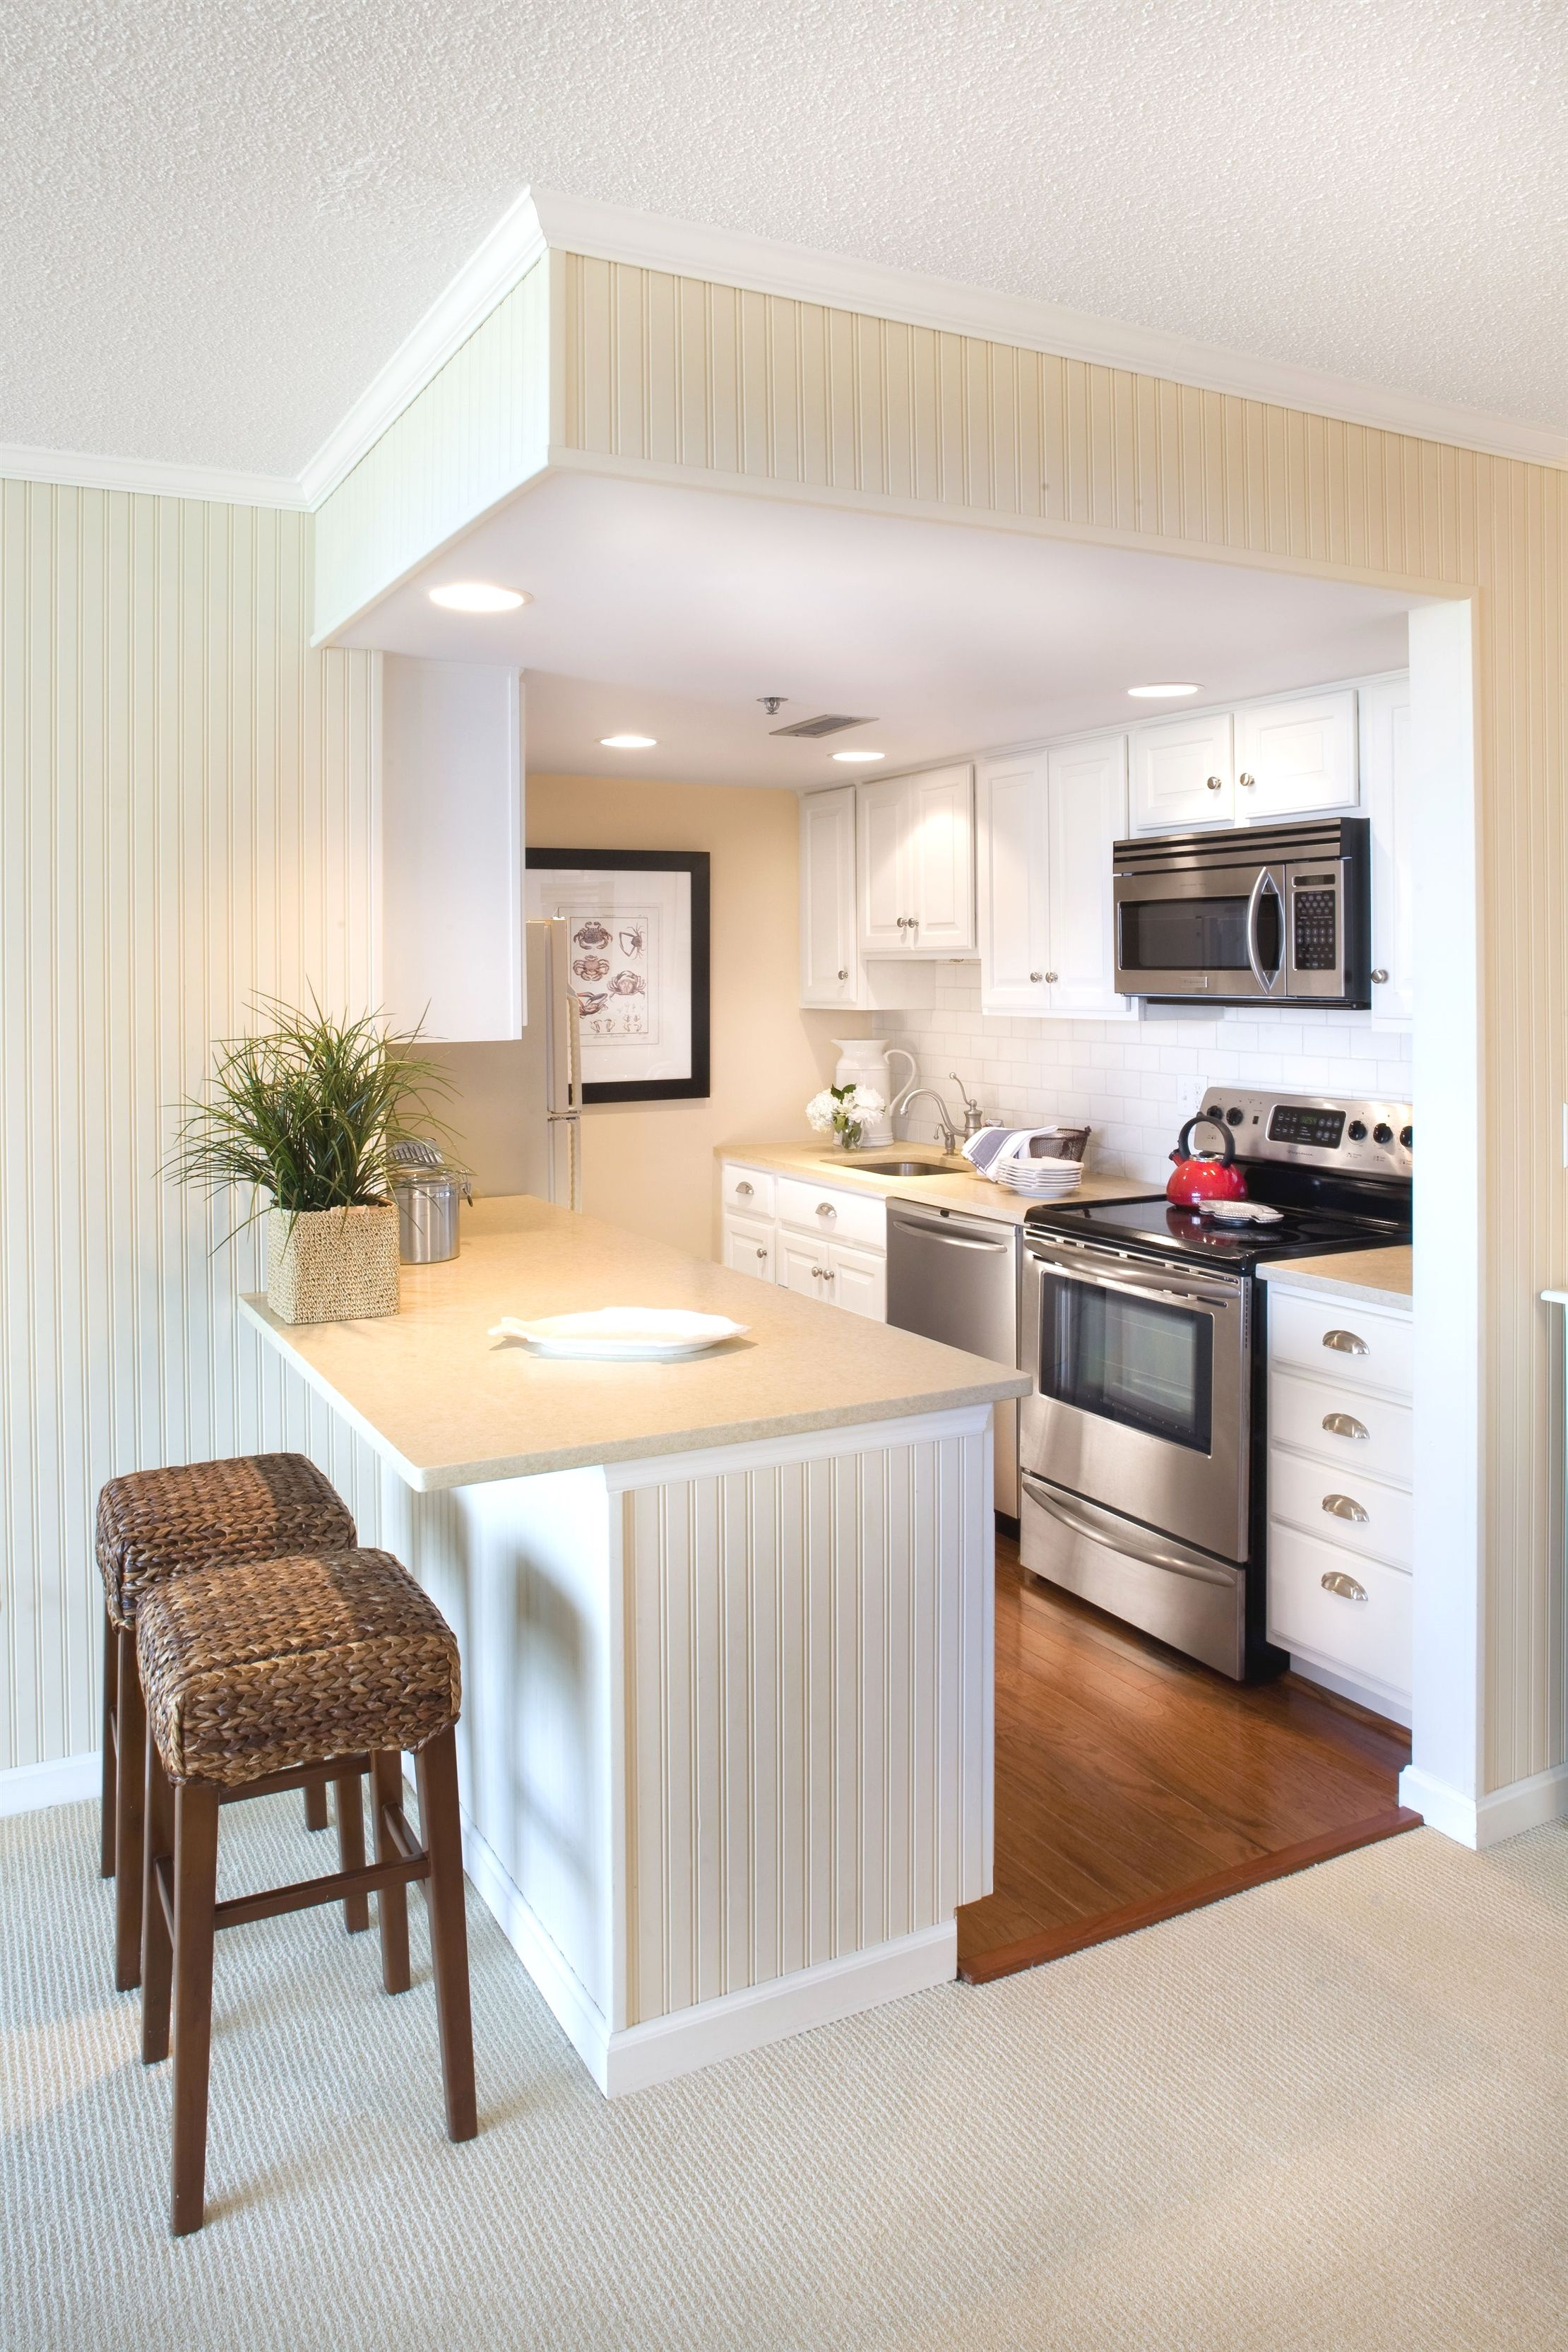 How To Plan A Perfect Kitchen Layout Smallapartmentideas